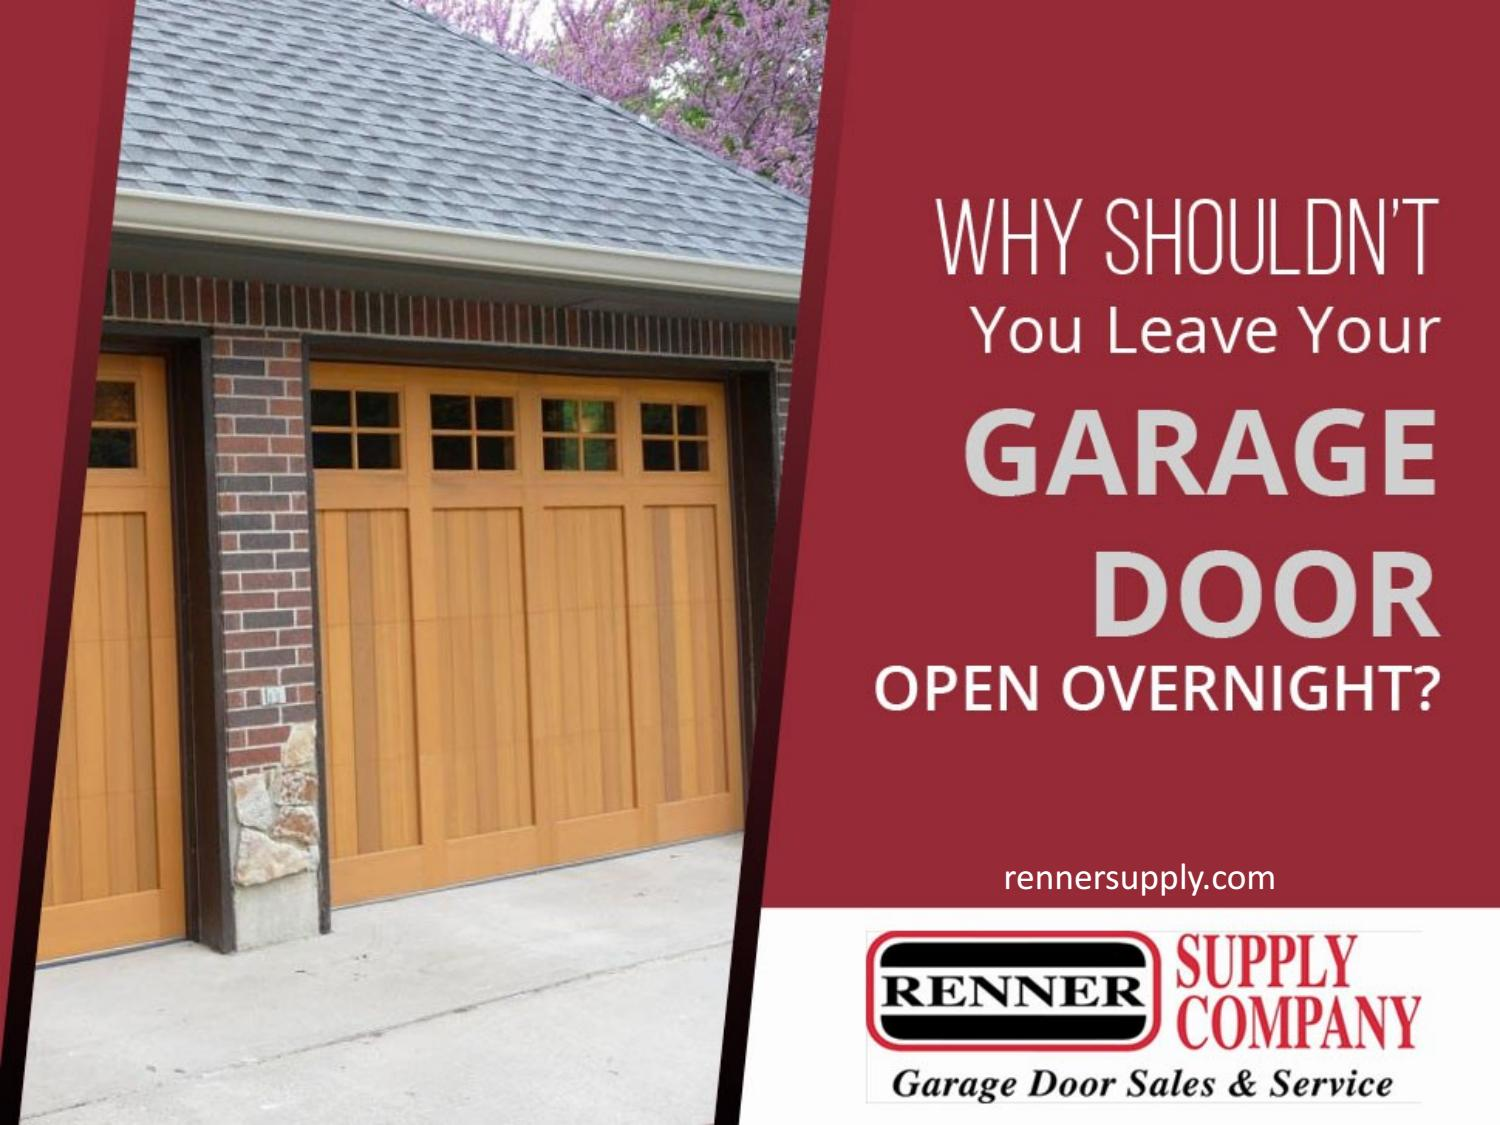 Top Reasons Why You Shouldnu0027t Leave Your Garage Doors Open Overnight By  Renner Supply Company   Issuu